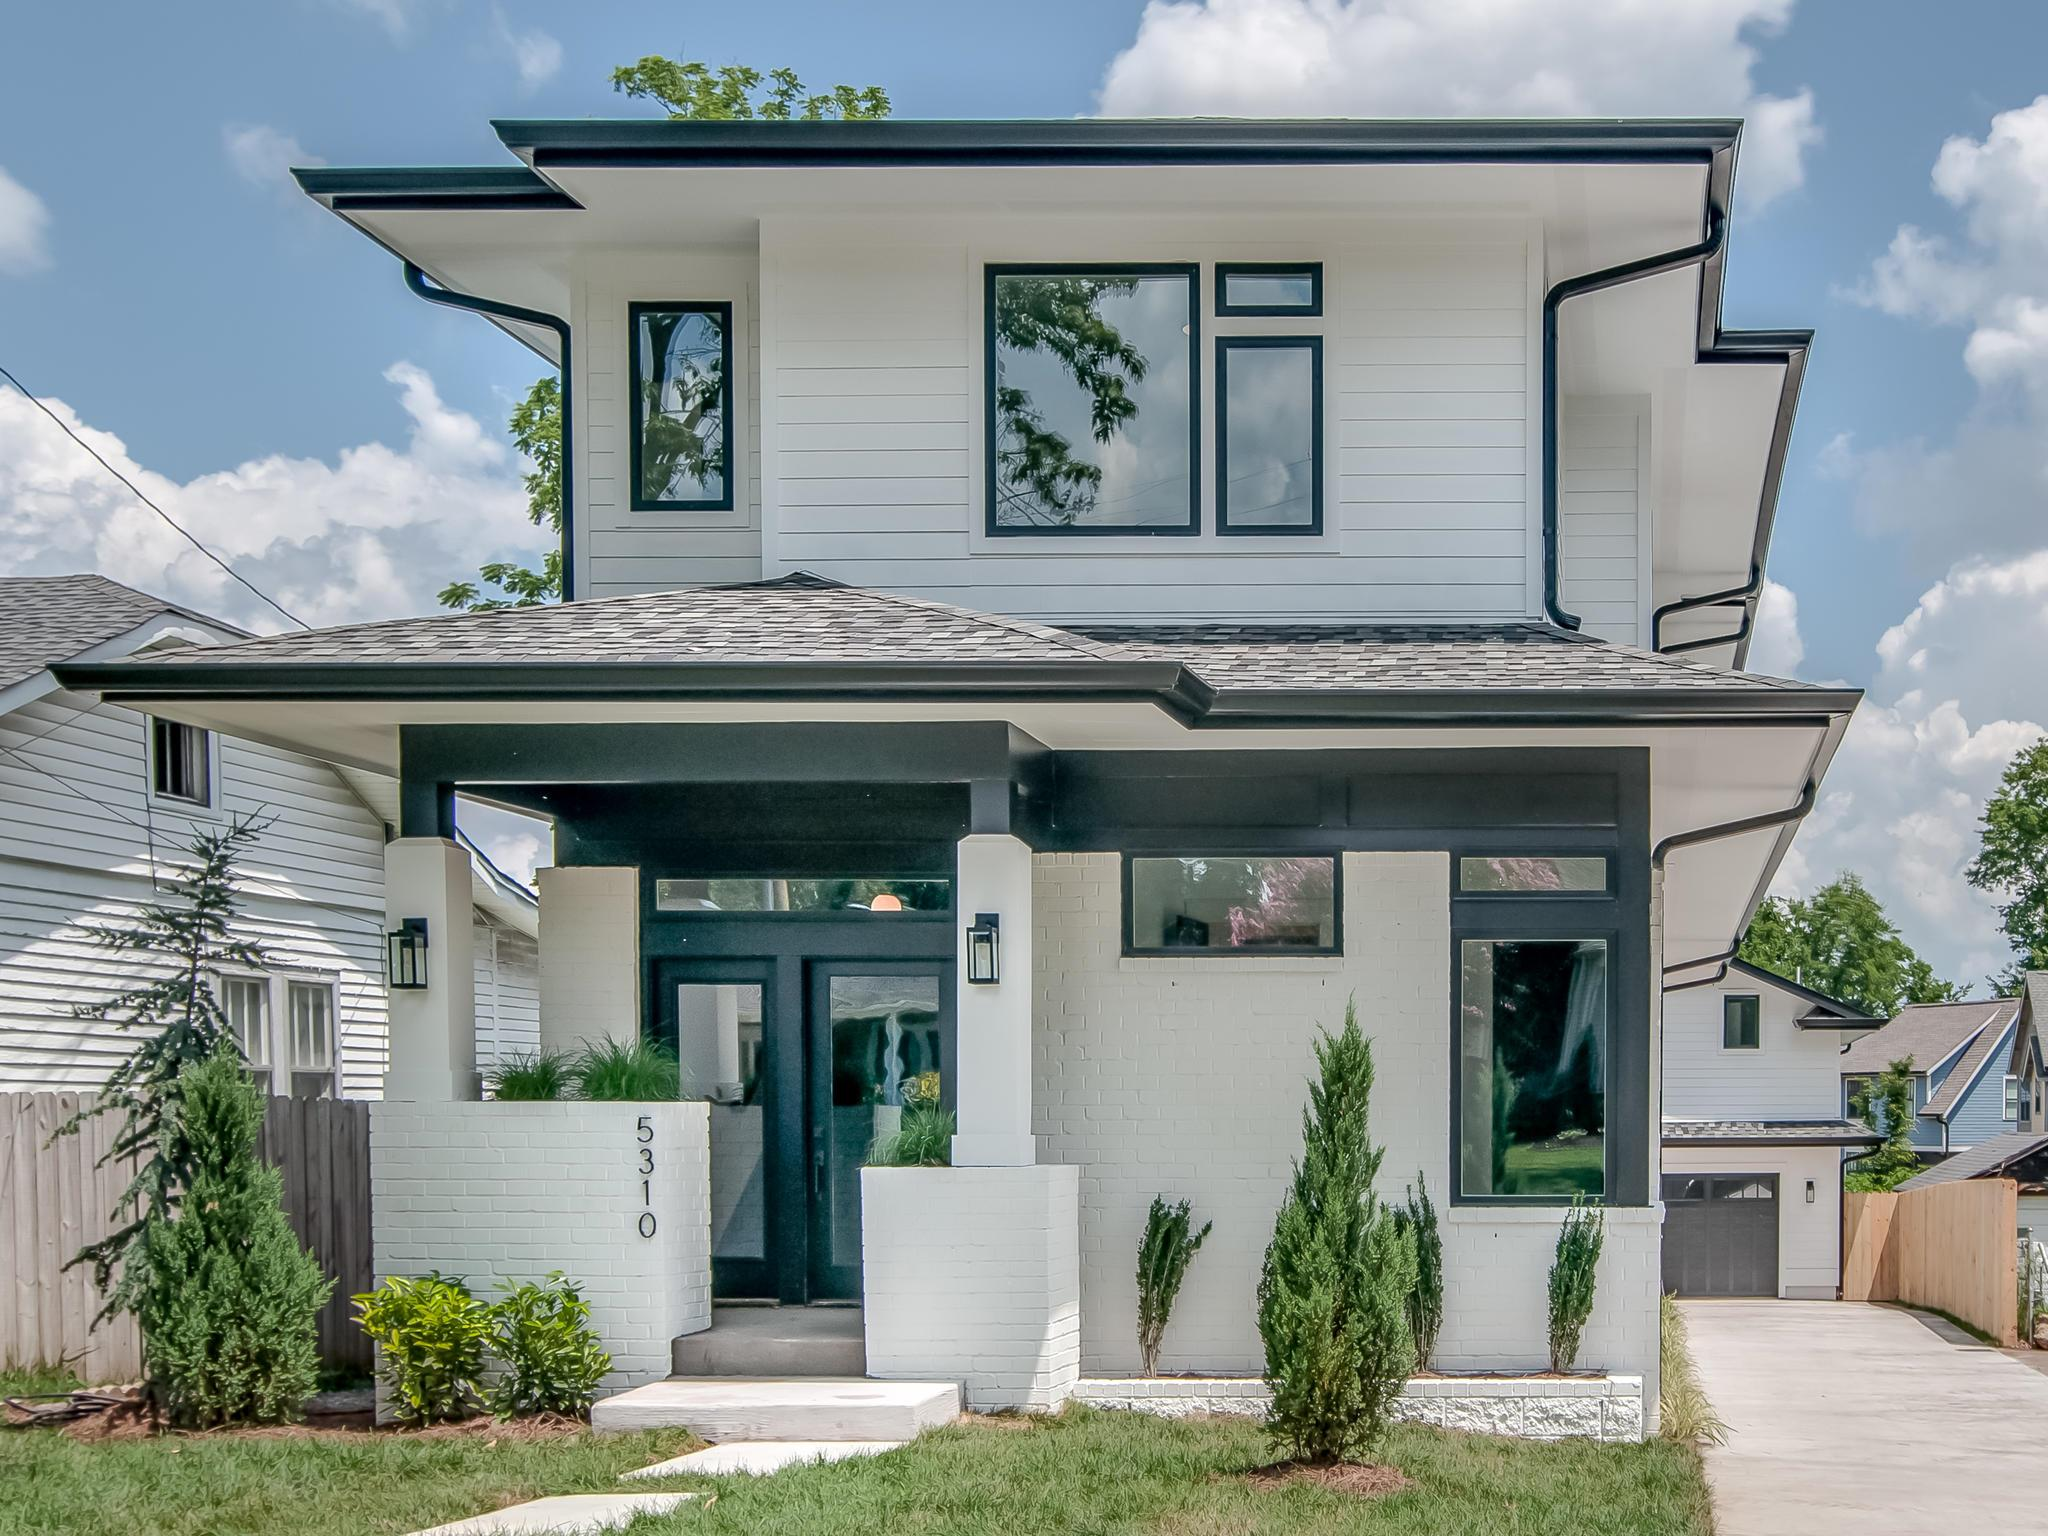 5310 Elkins Ave, Nashville, TN 37209 - Nashville, TN real estate listing